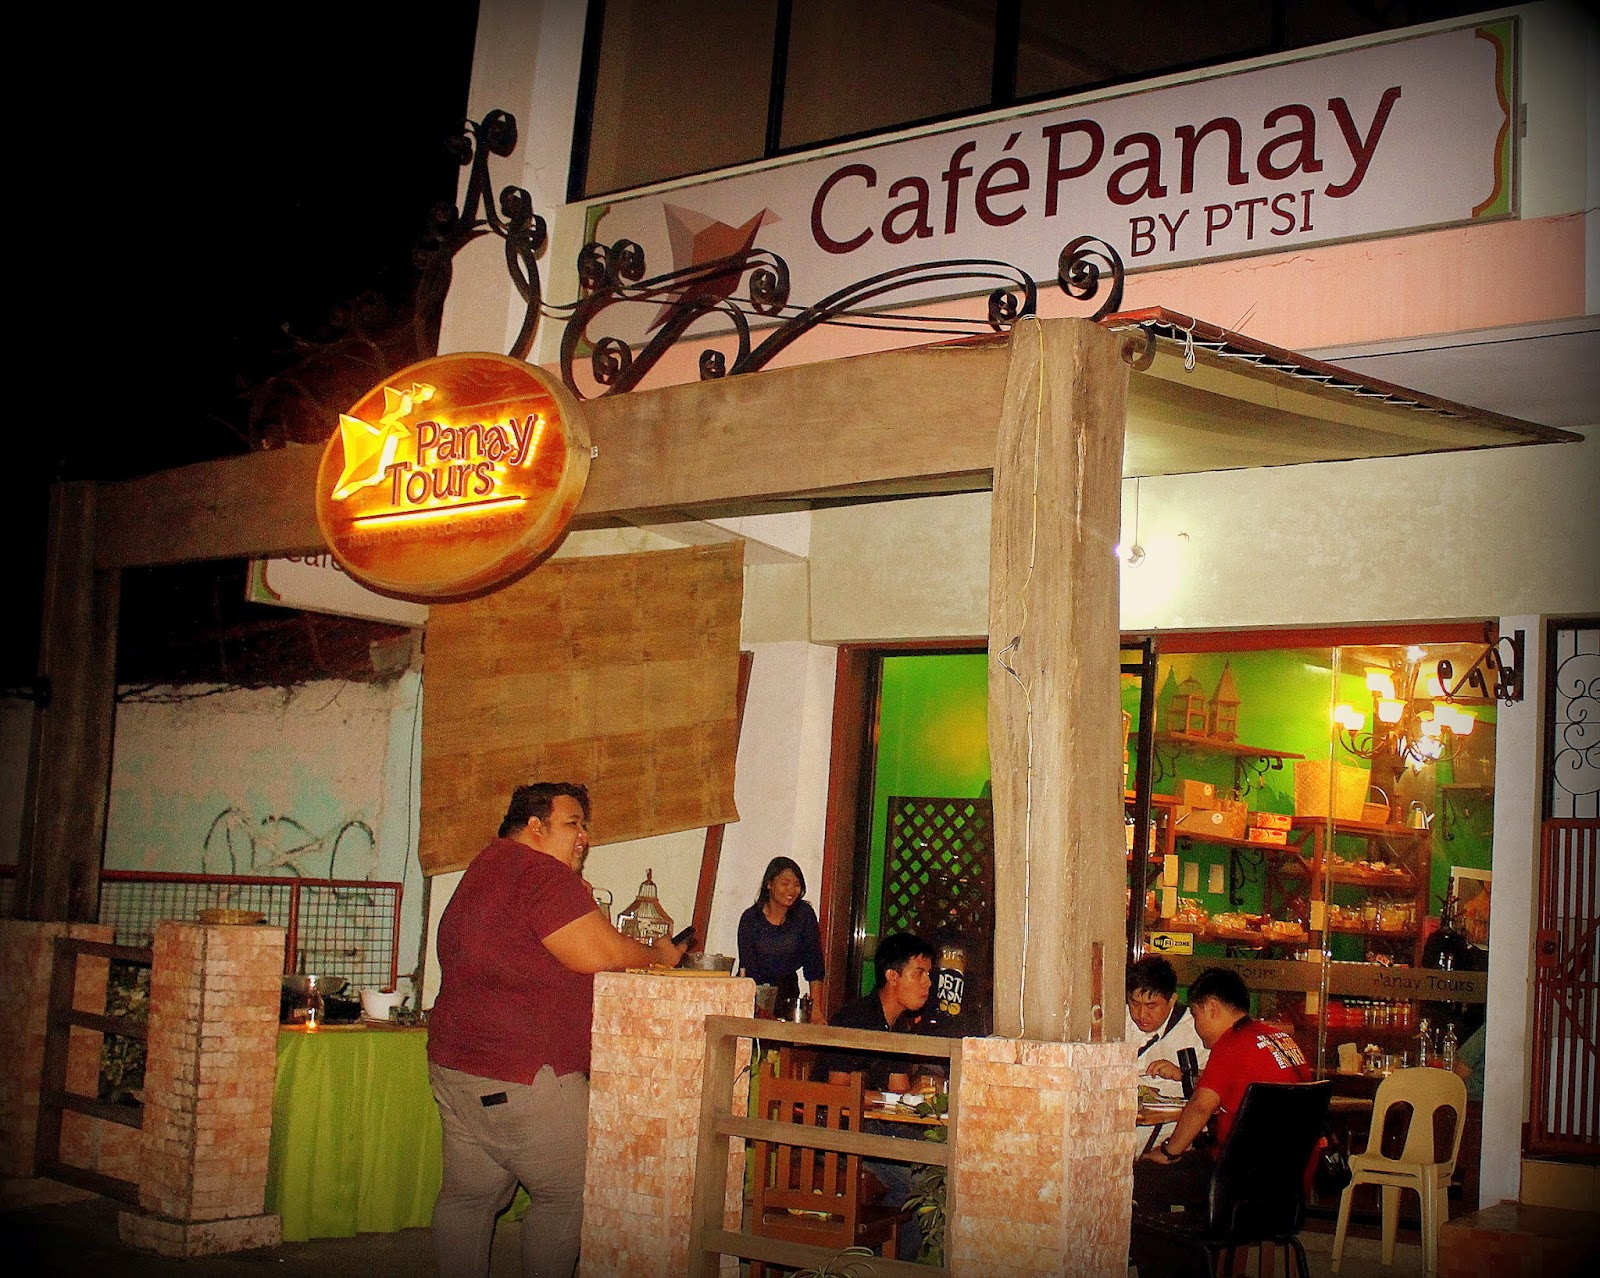 Cafe panay celebrates st anniversary with exciting new dishes